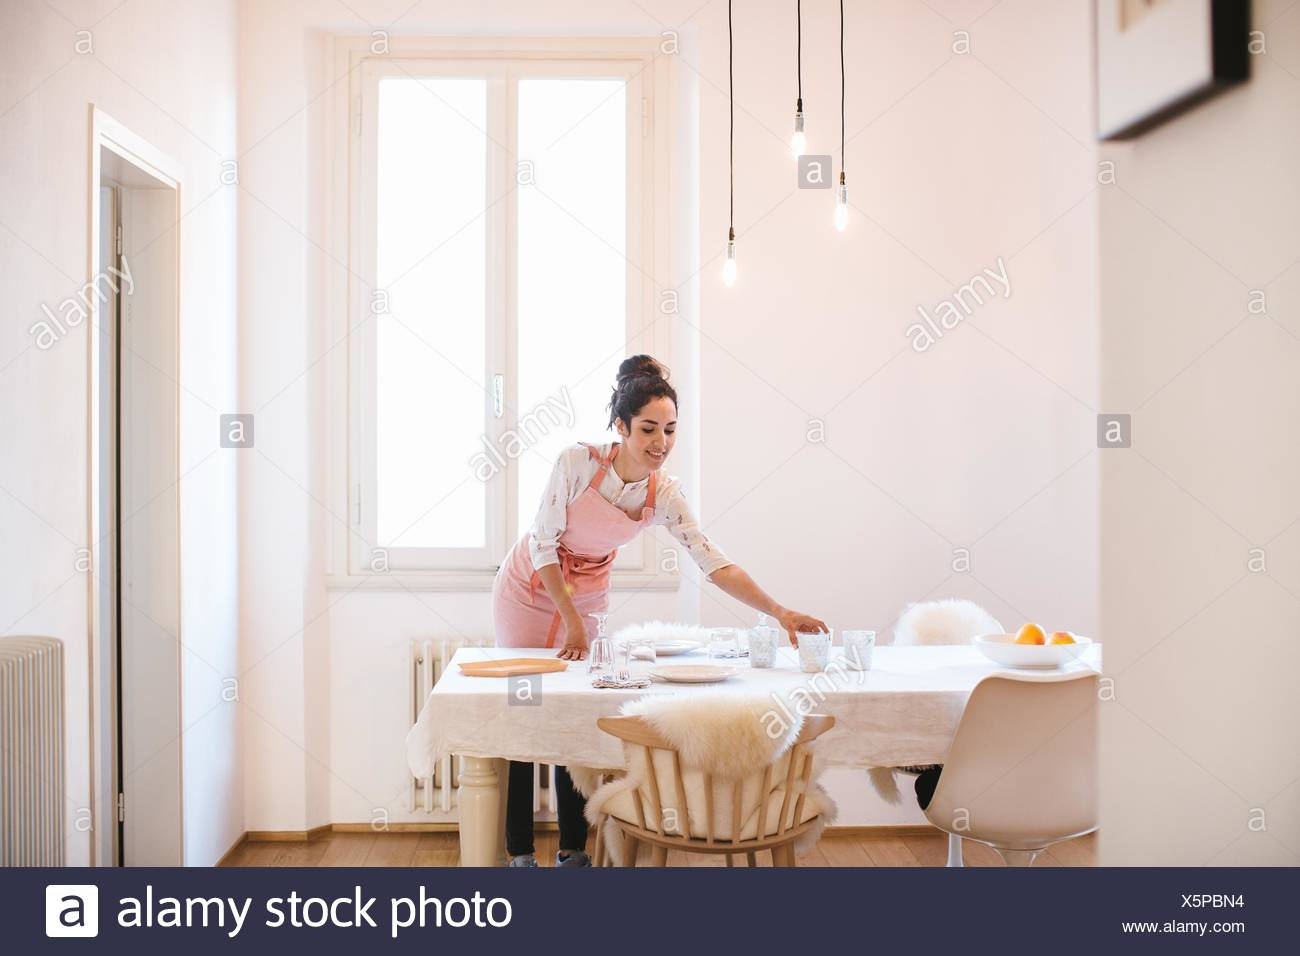 Young housewife wearing apron preparing dining table - Stock Image